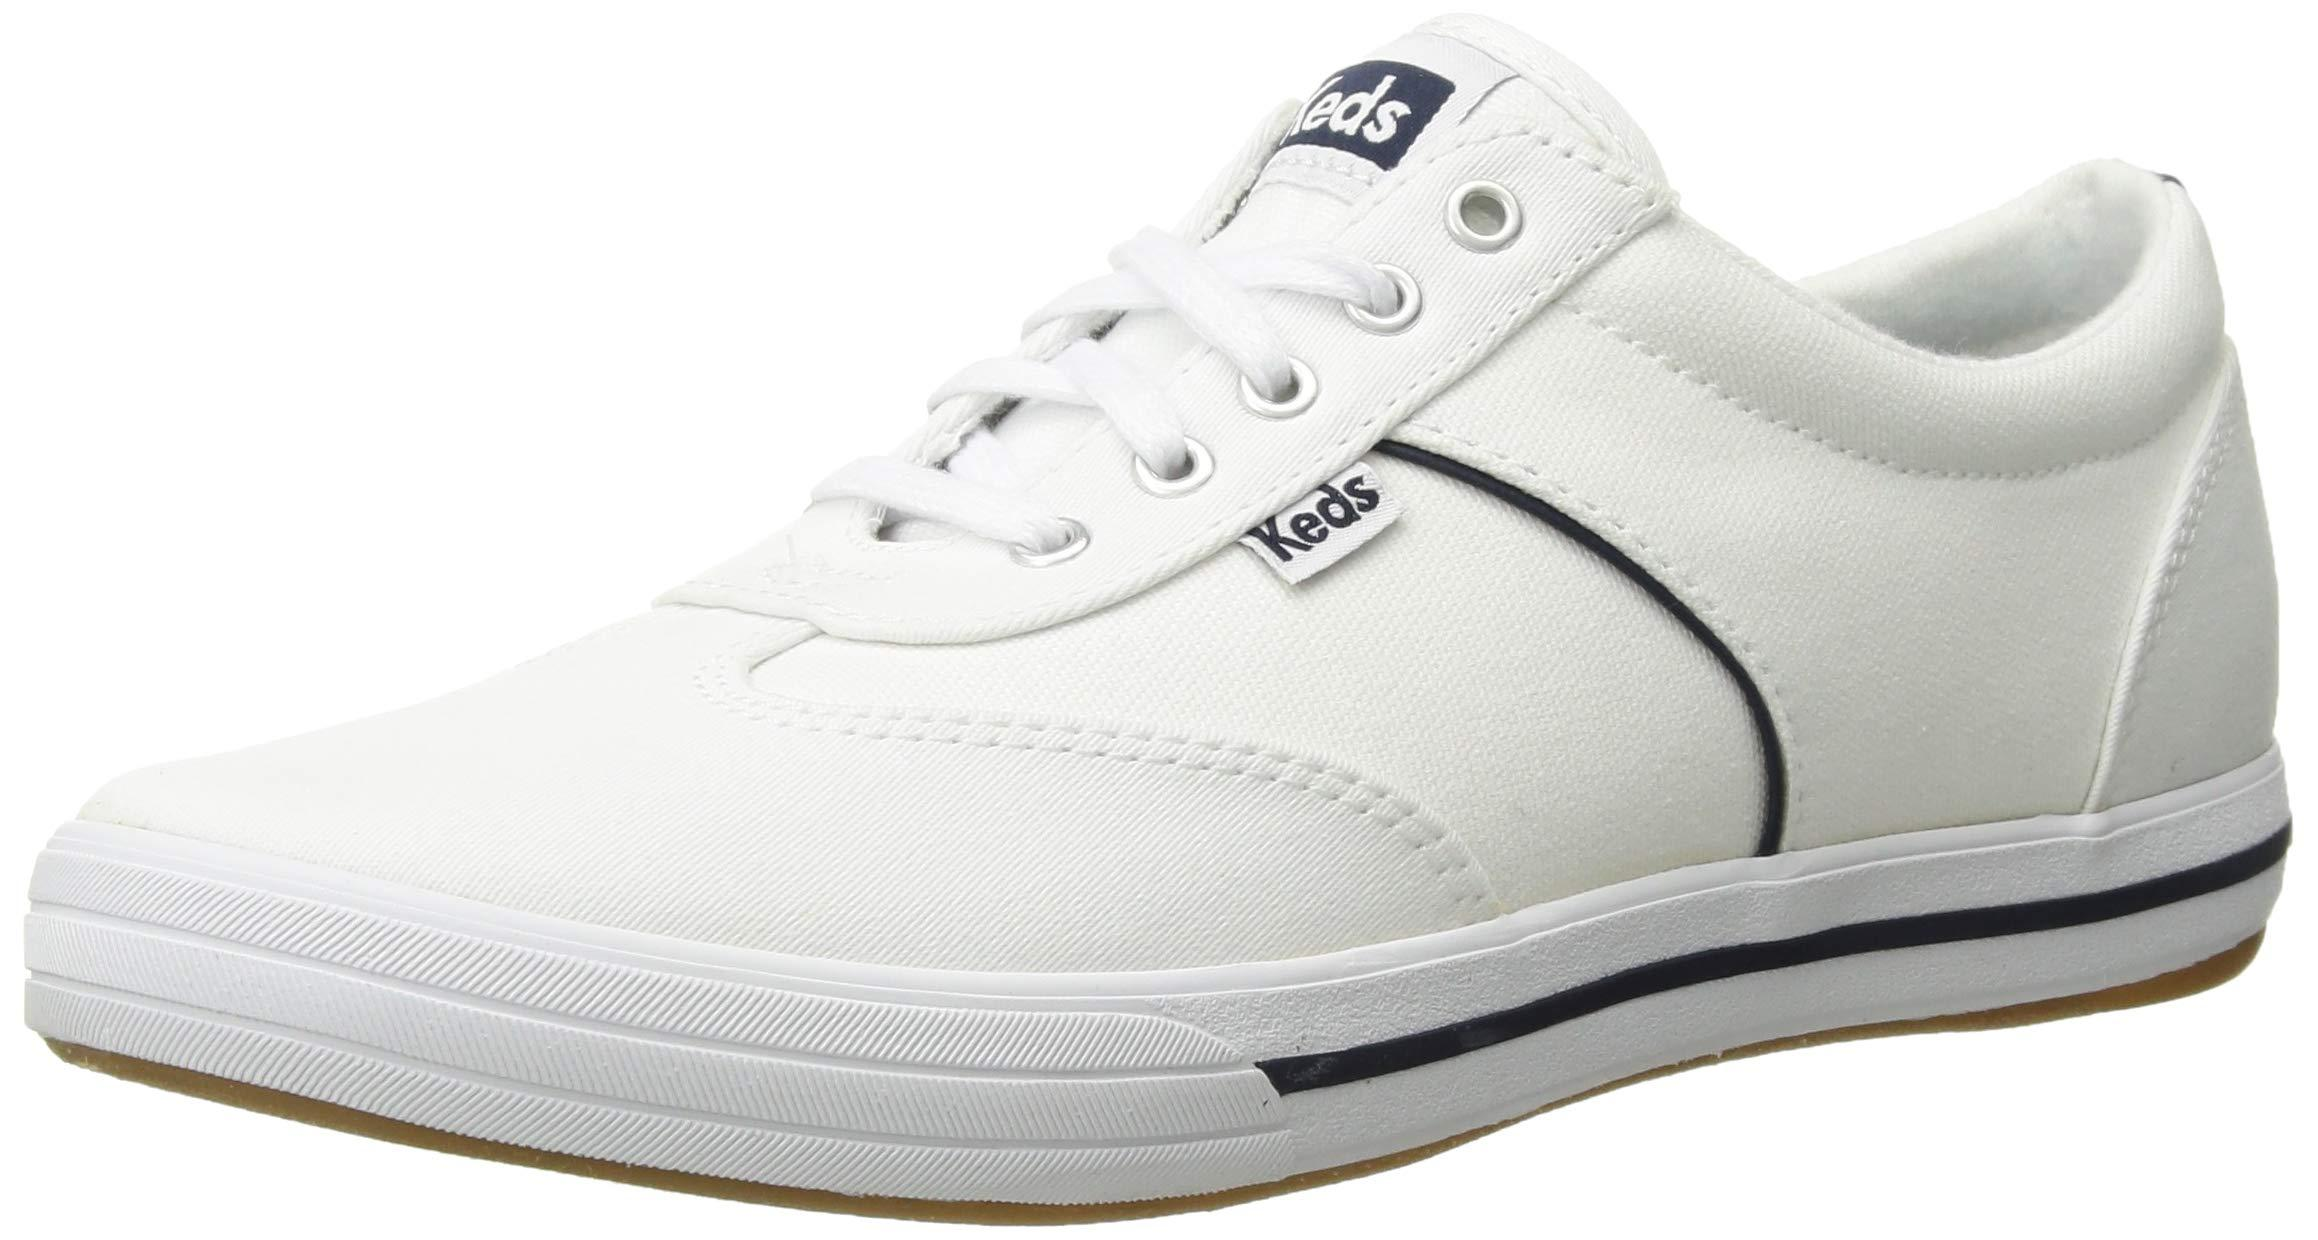 Keds Courty Core Sneaker in White